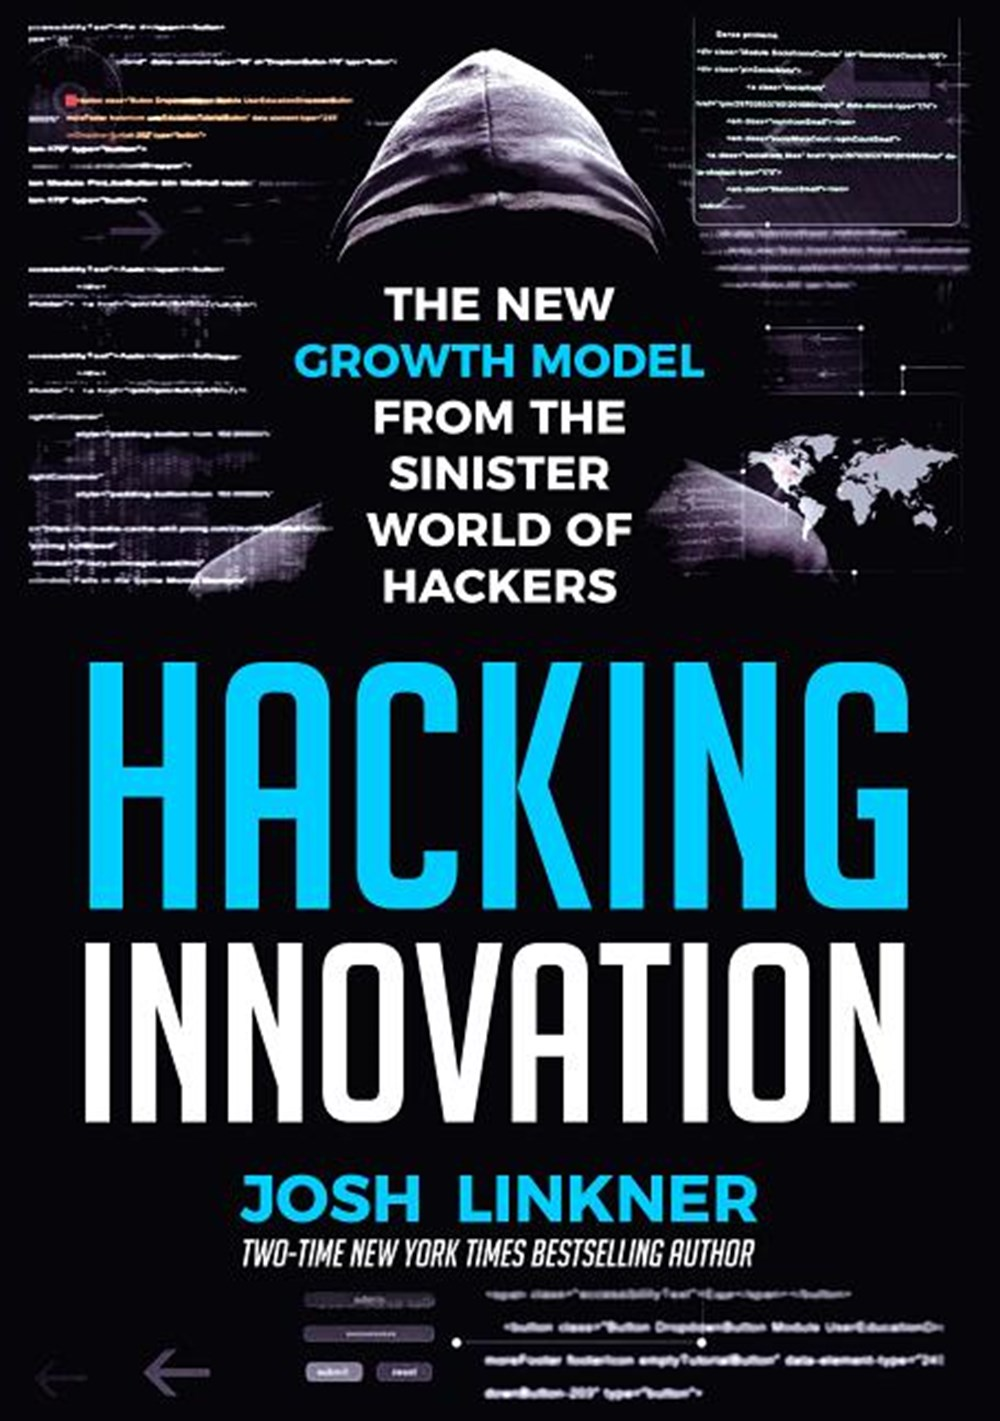 Hacking Innovation The New Growth Model from the Sinister World of Hackers